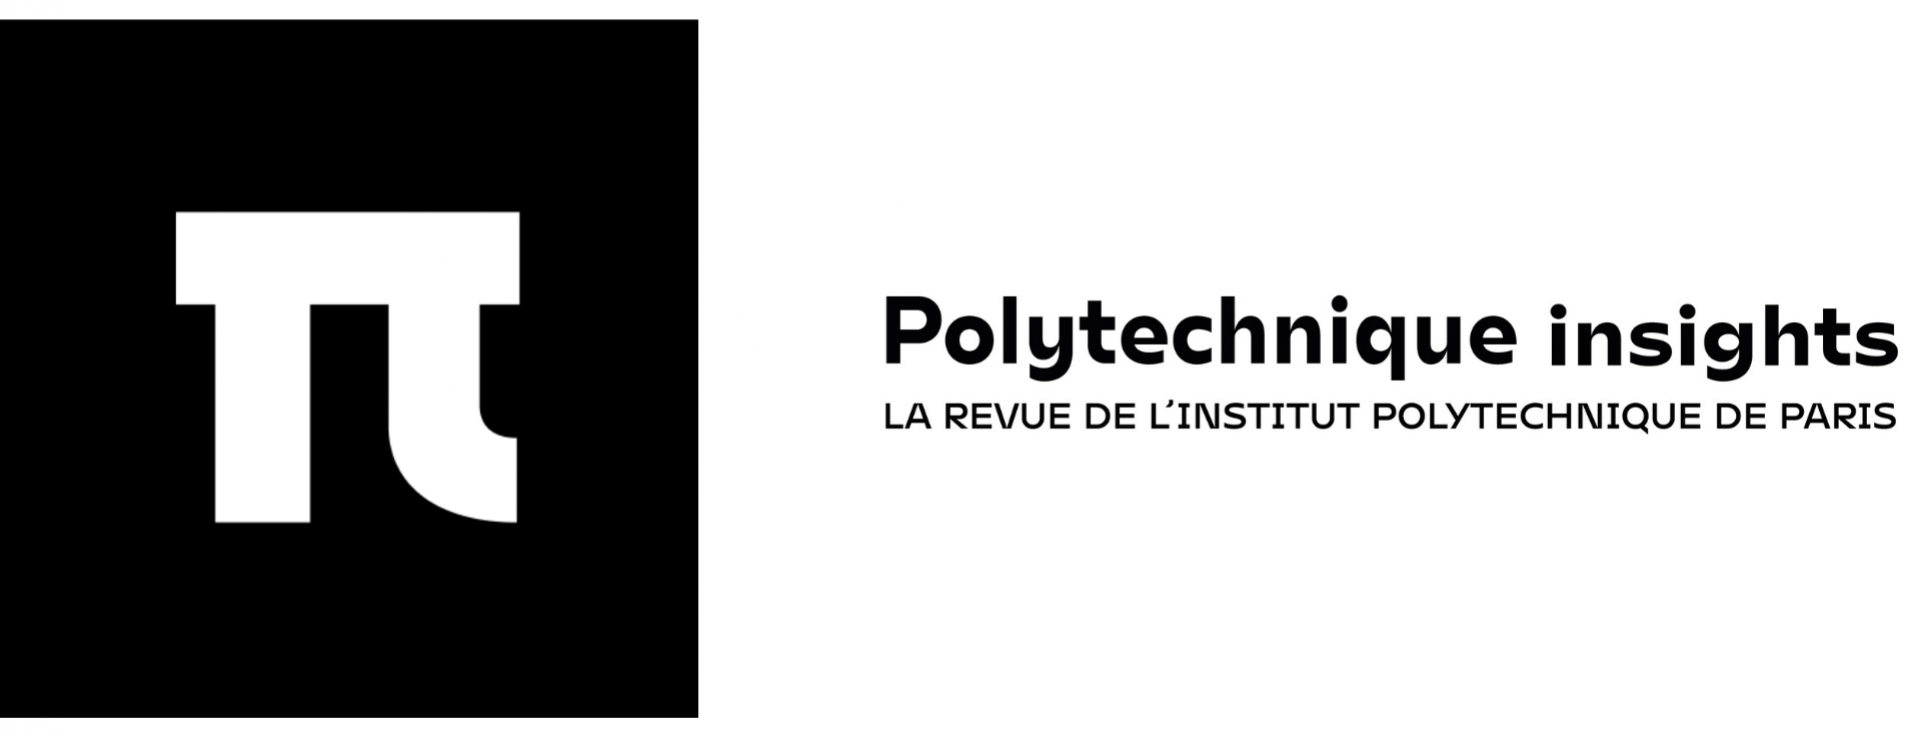 Polytechnique Insights: the new review of the Institut Polytechnique de Paris